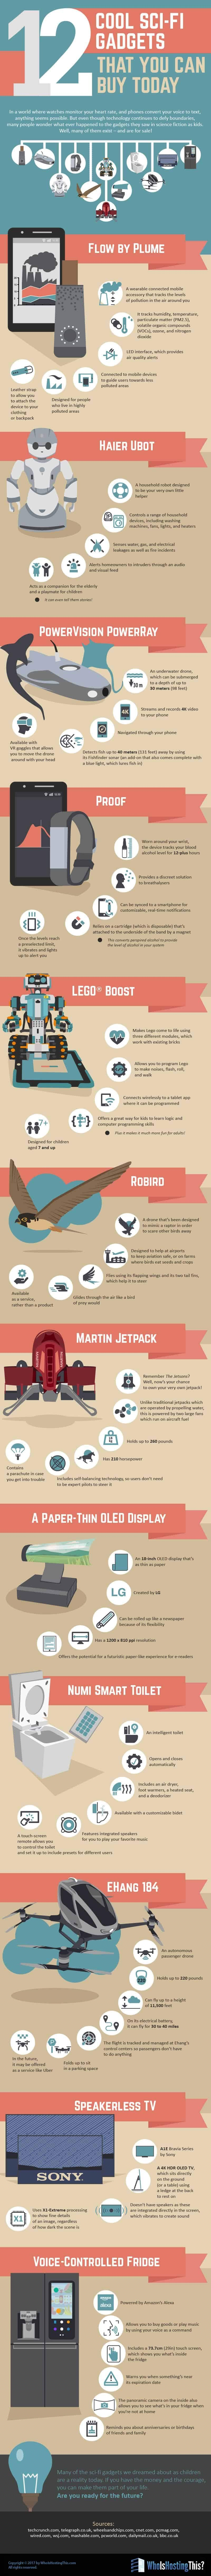 12 Sci-Fi Gadgets That You Can Buy Today #Infographic